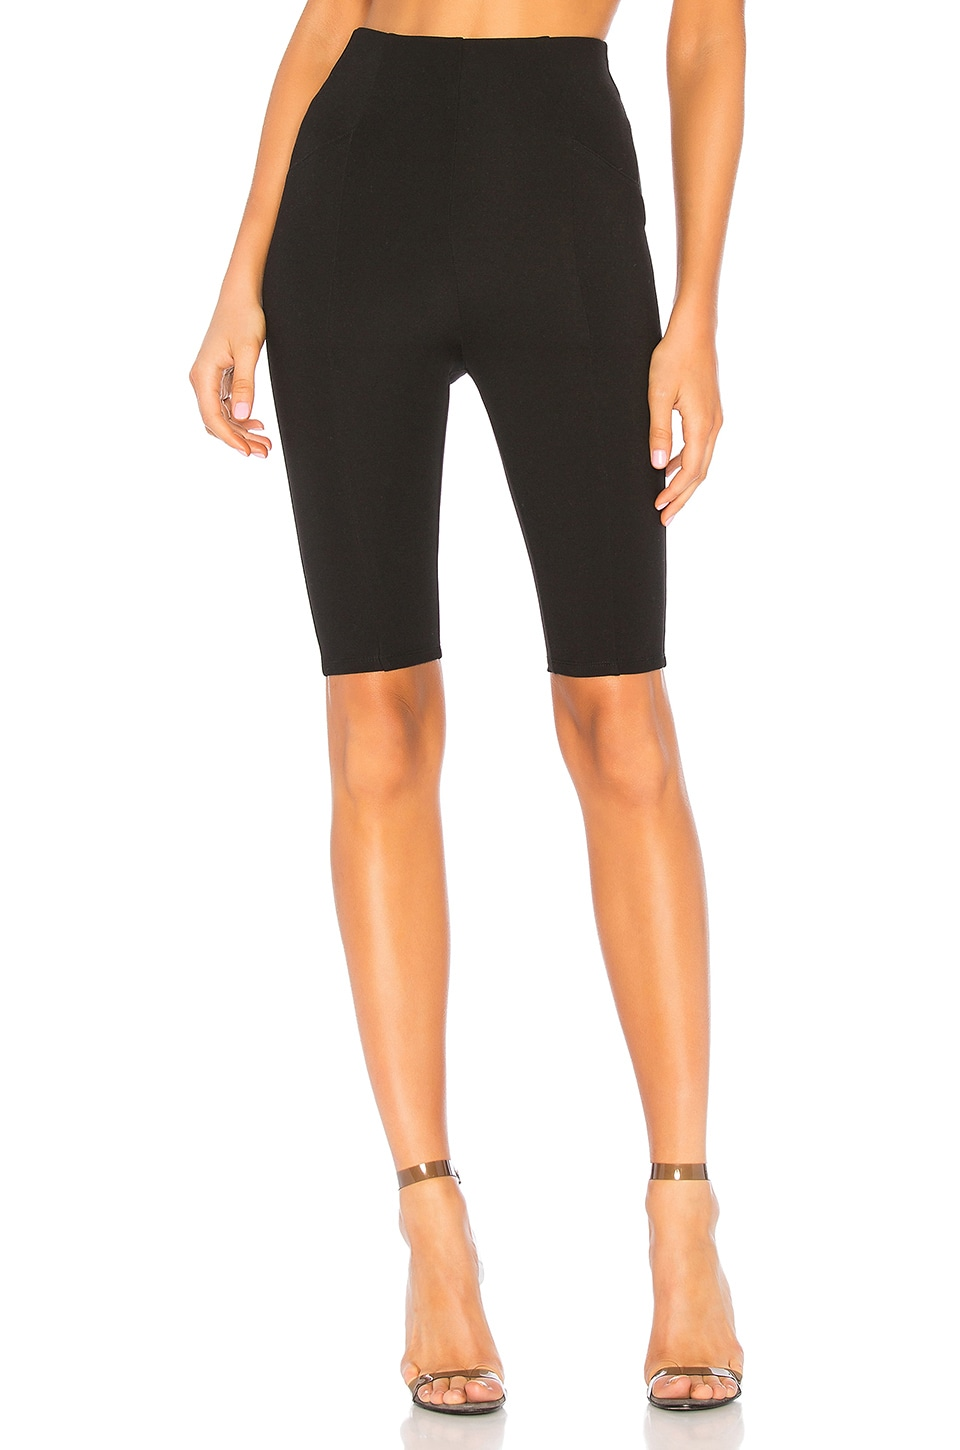 LPA City Short in Black